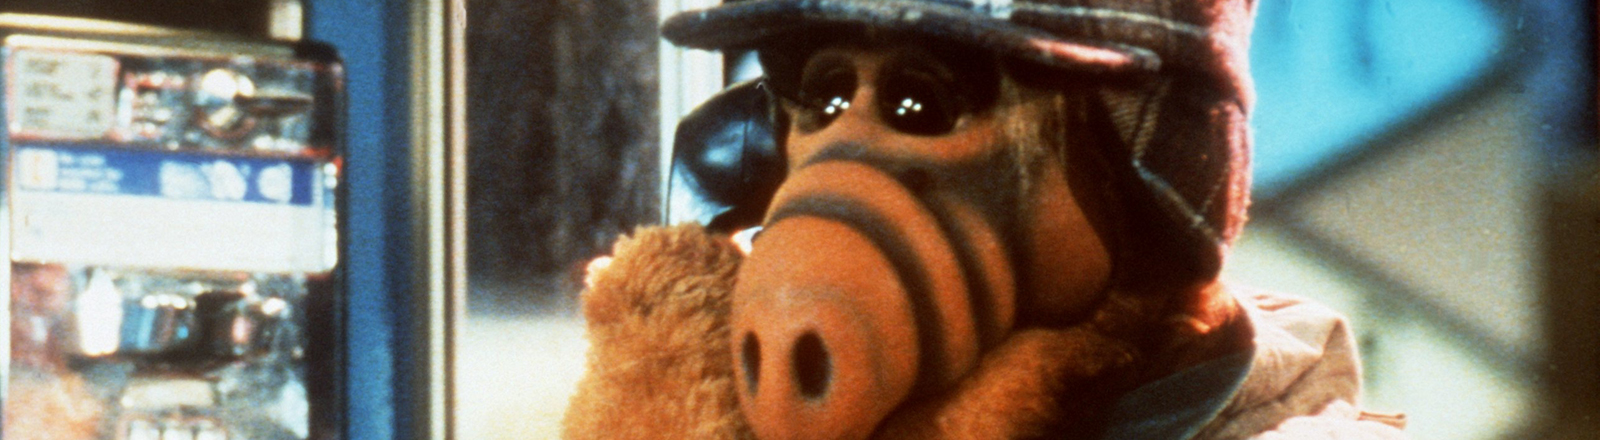 Screenshot aus der TV-Serie ALF